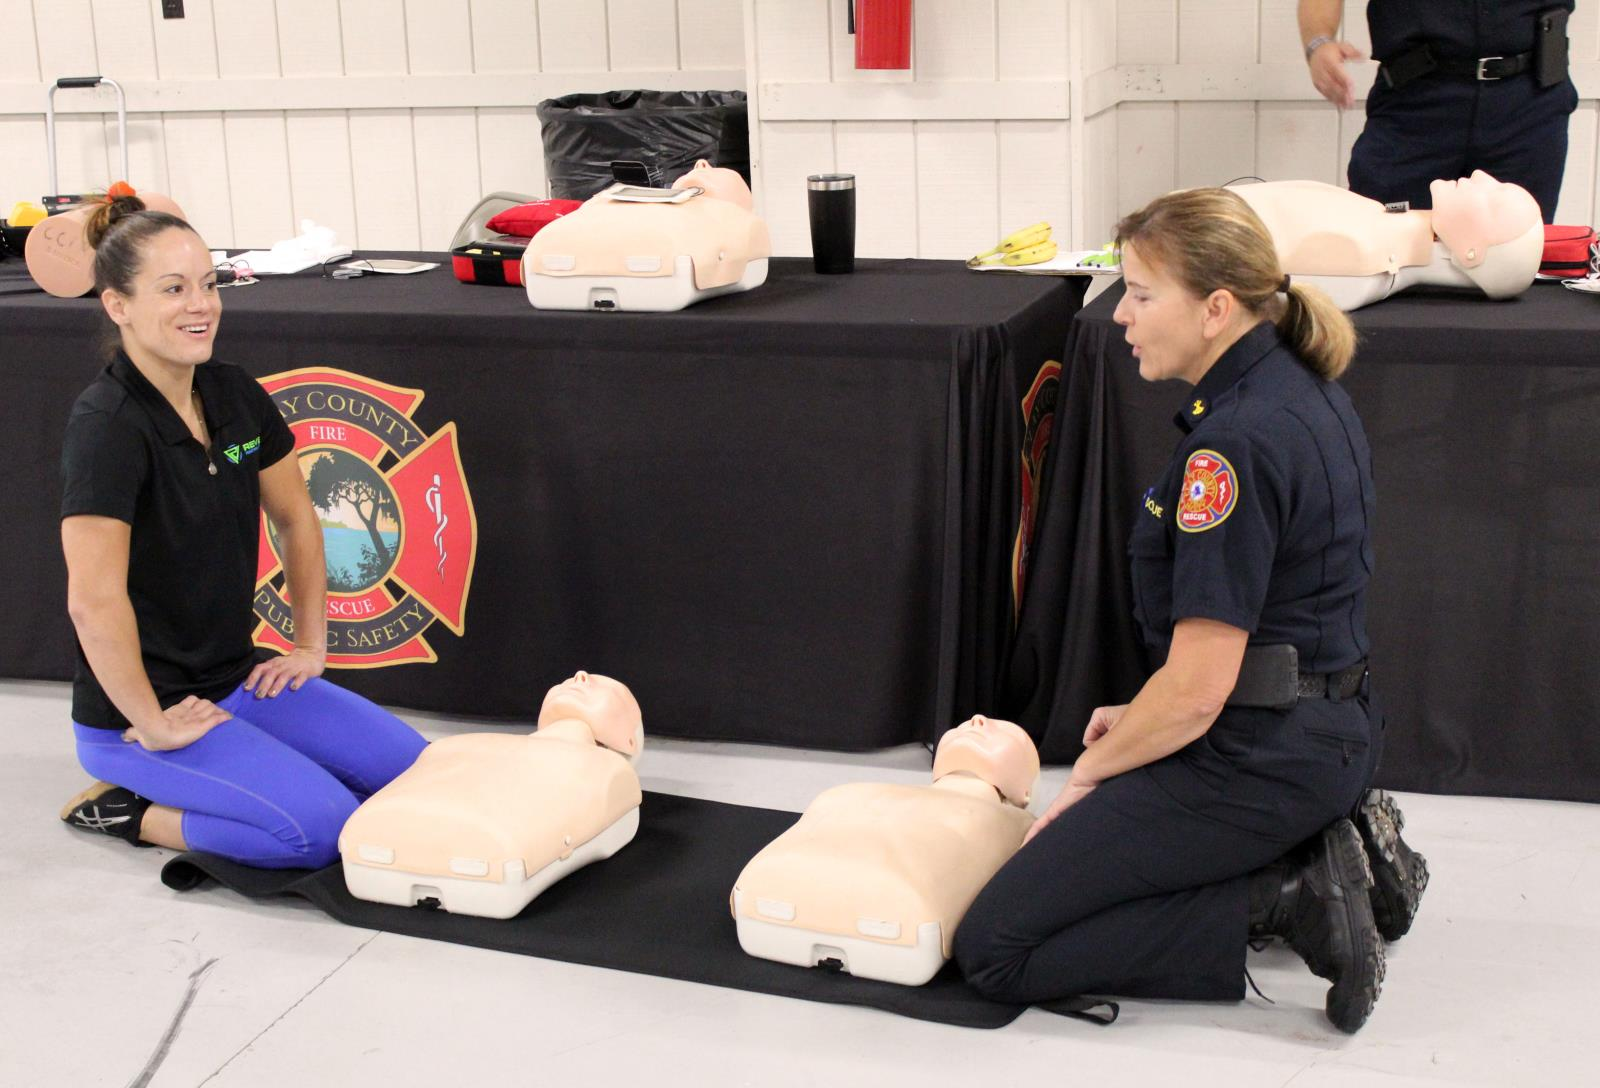 Firefighter on floor demonstrating CPR on dummies